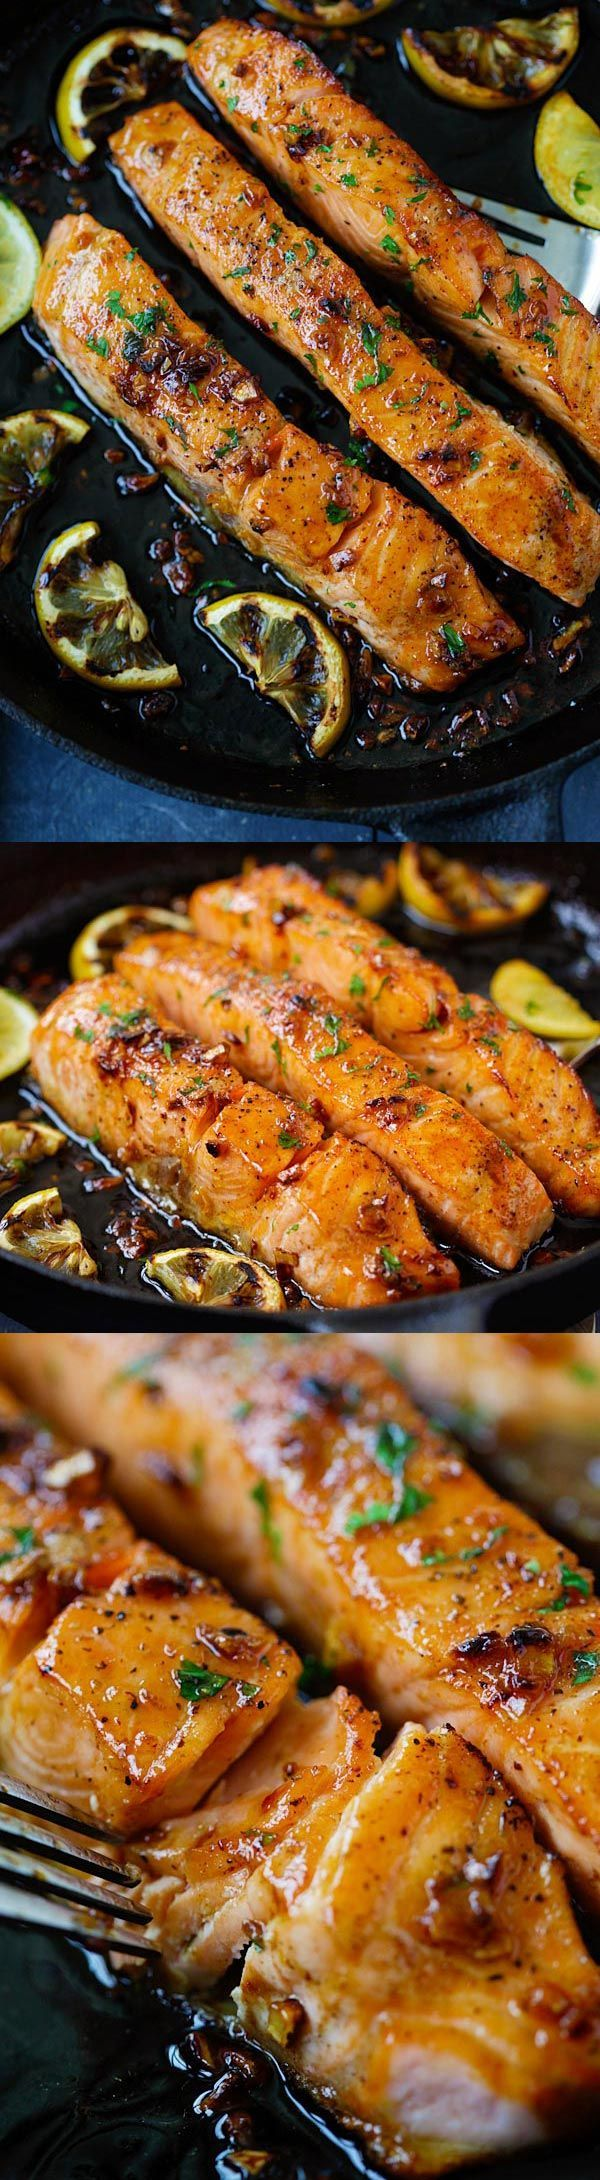 Honey Garlic Salmon – garlicky, sweet and sticky salmon with simple ingredients. Takes 20 mins, so good and great for